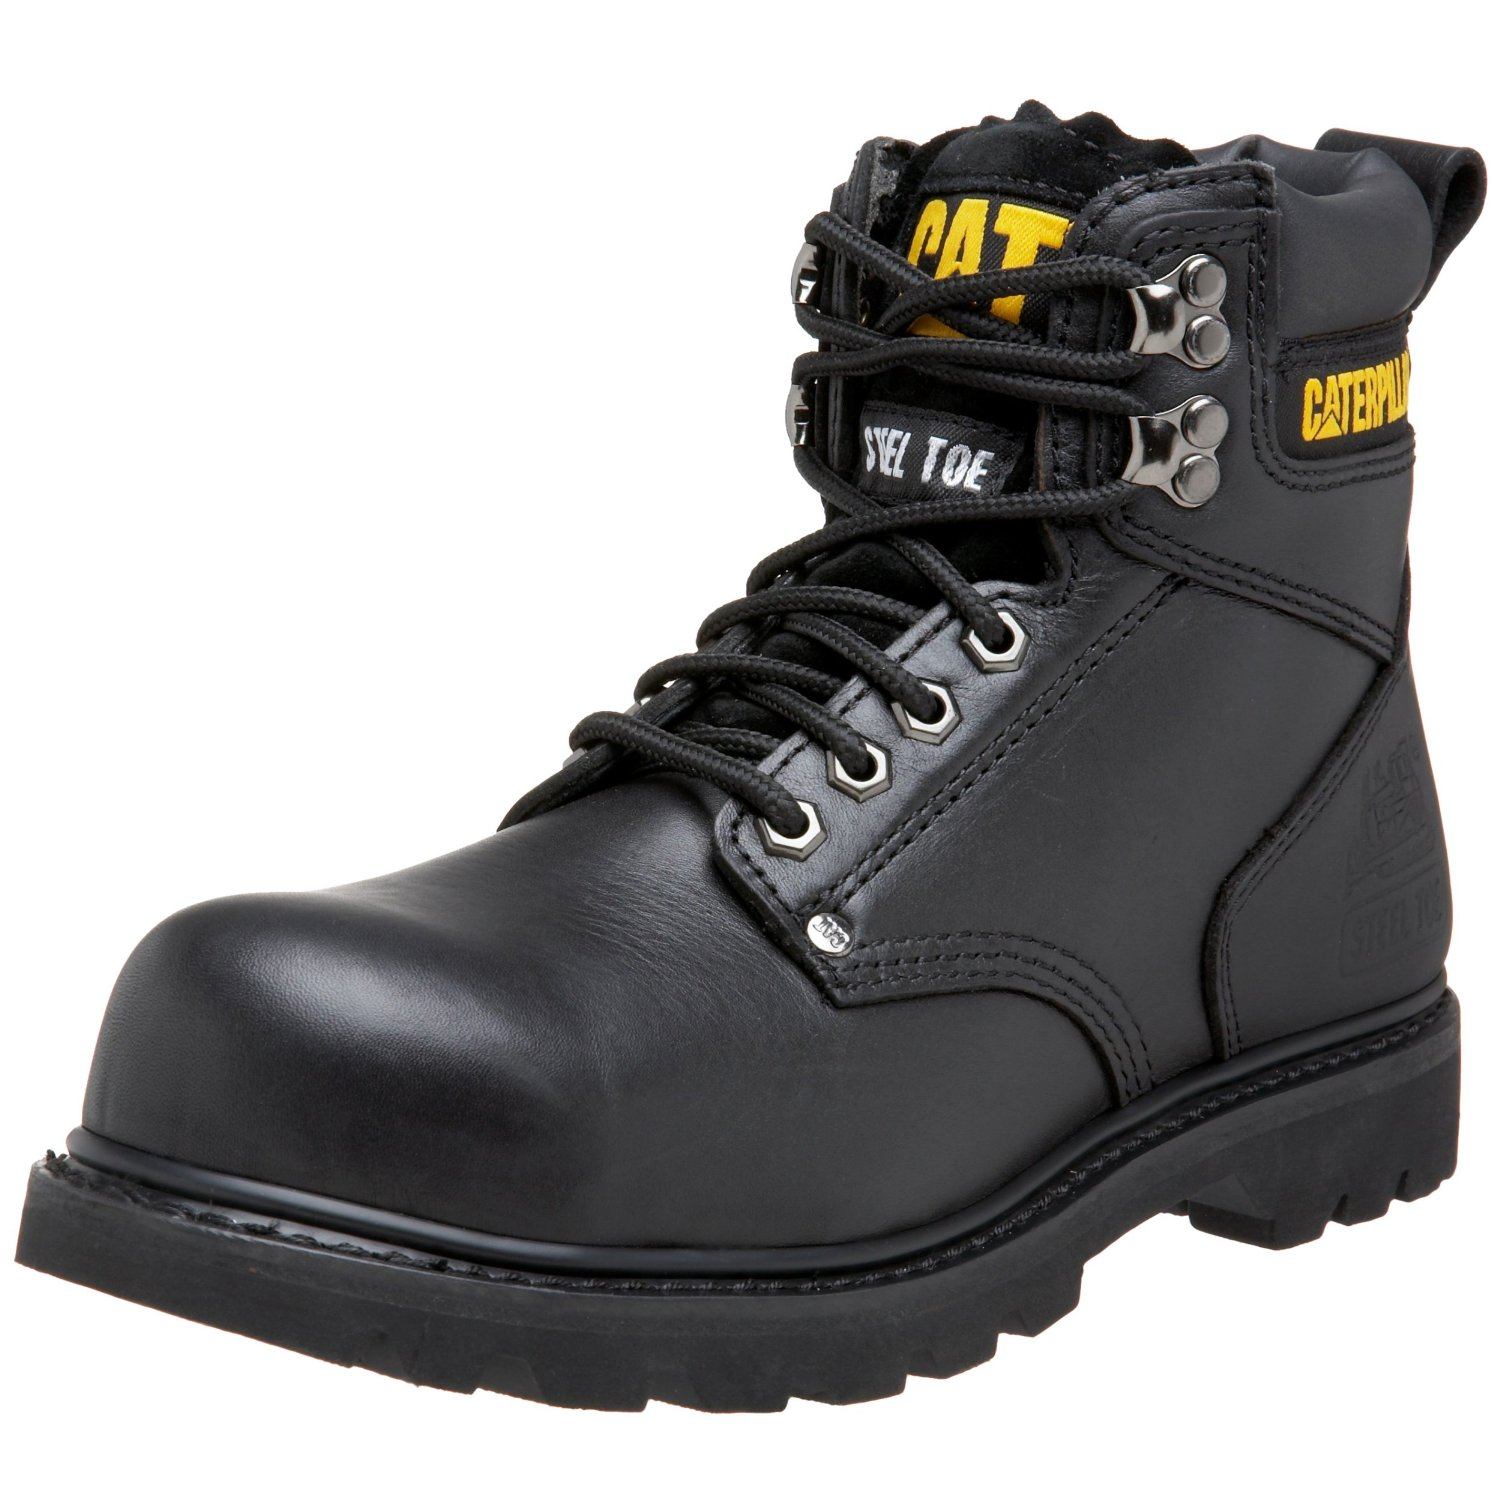 Caterpillar Steel Toe Hiking Boots Car Interior Design